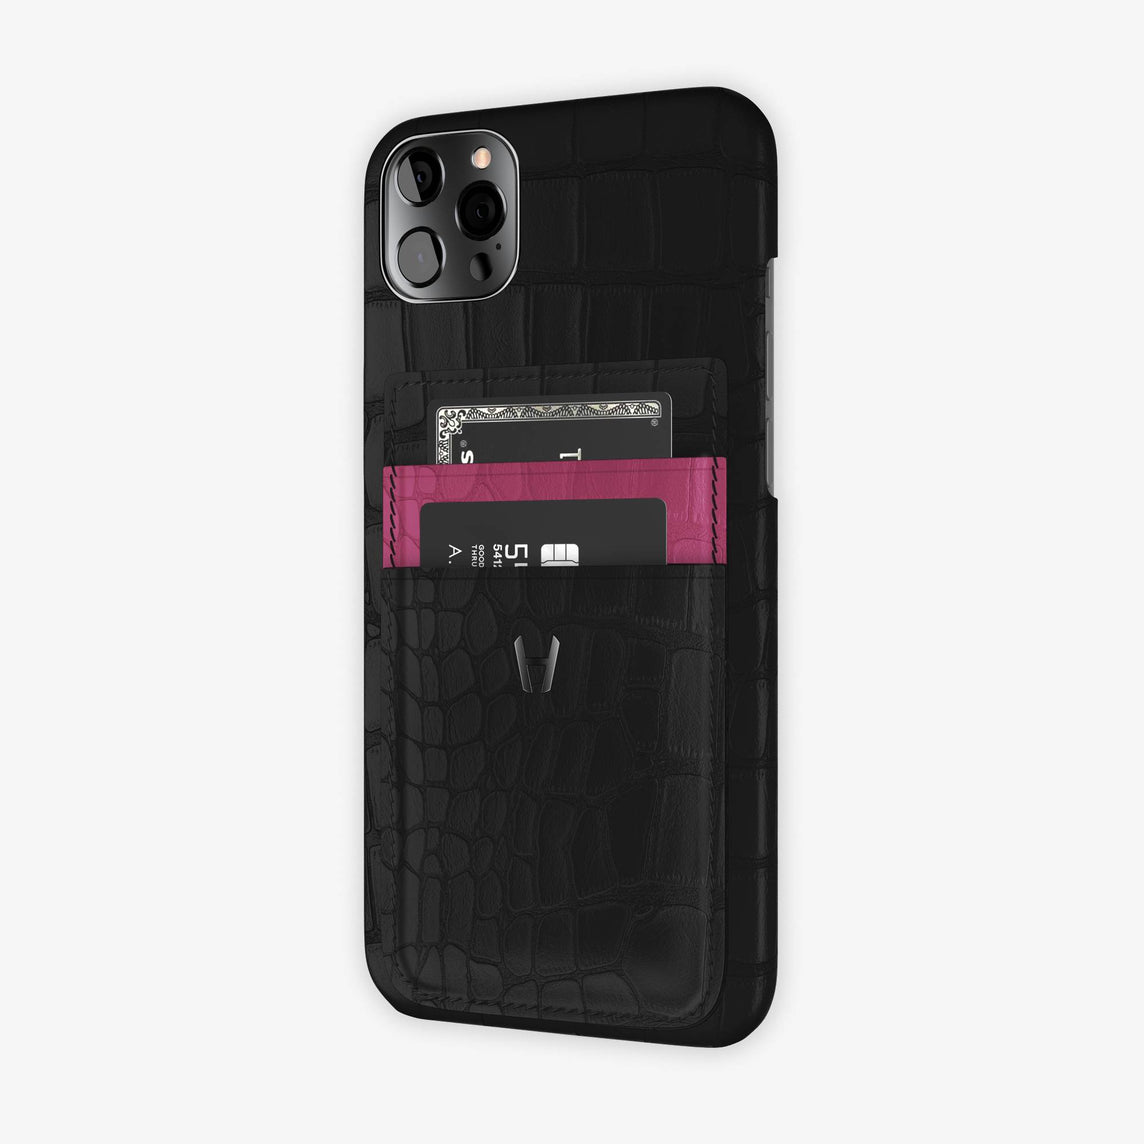 iPhone 12 Pro Max | Black/Pink Fuchsia - Black